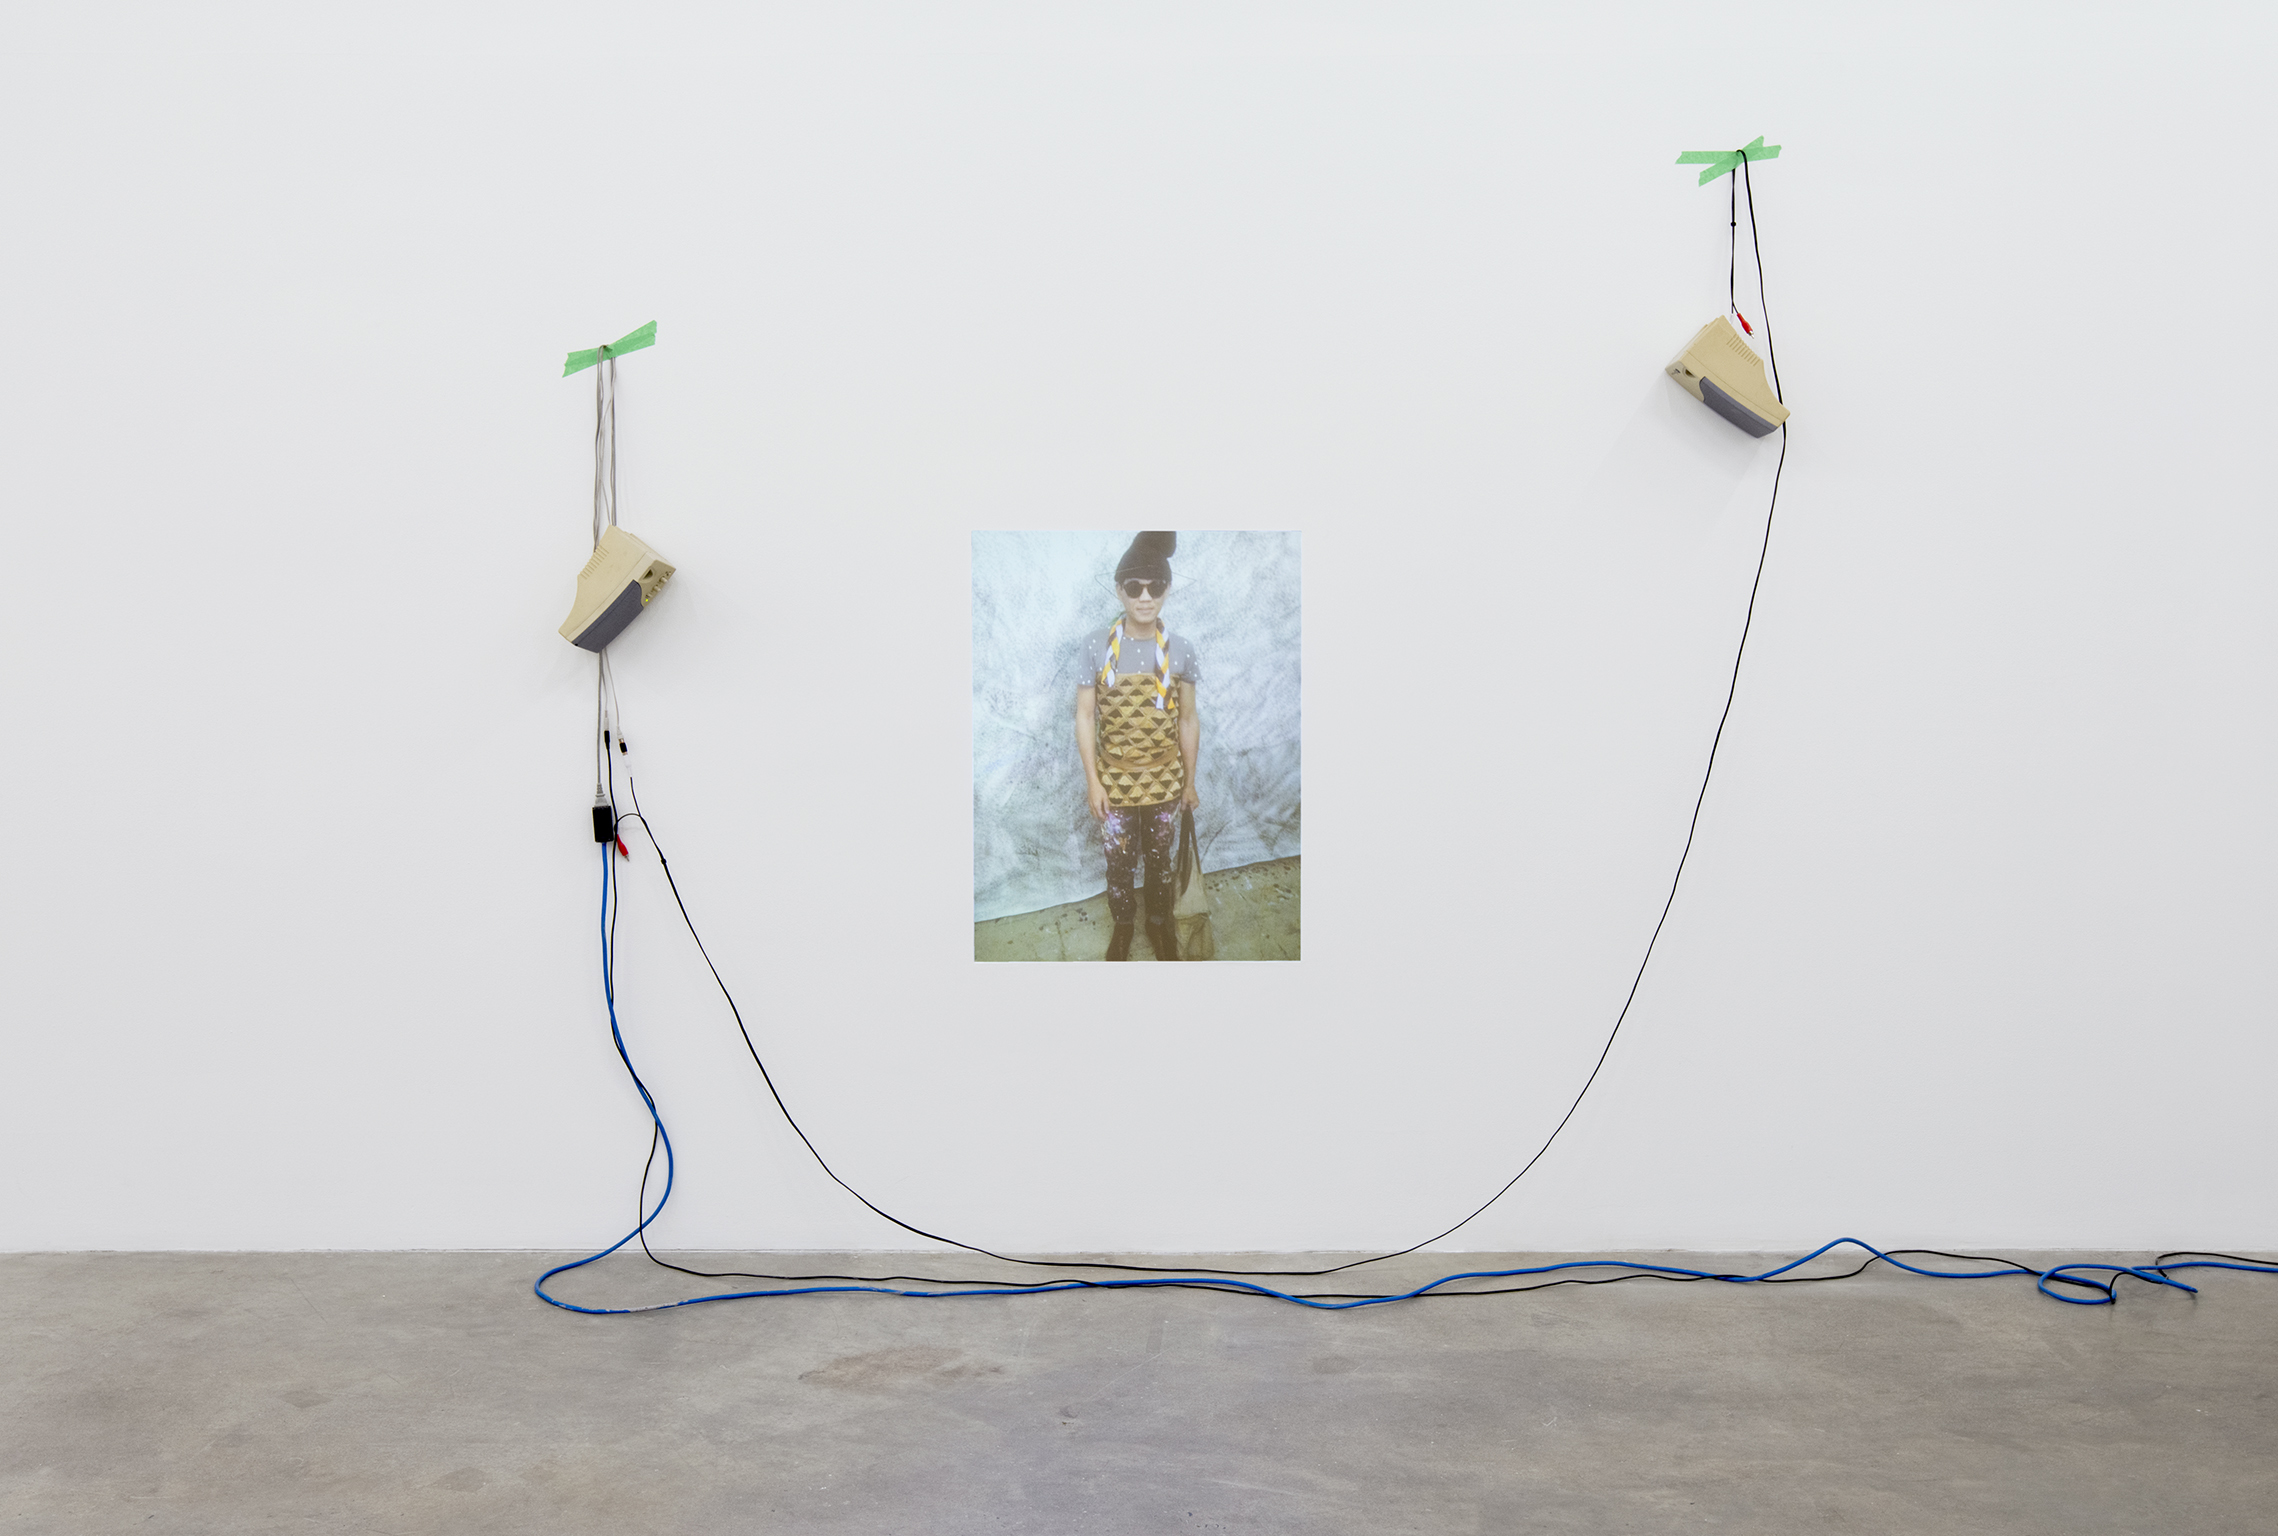 Ron Tran, Blue, Head, Red, Toes, and Green (unintentional moments), 2009–ongoing, HDV projection (photographs captured by friends), sound, 5 minutes, 28 seconds by